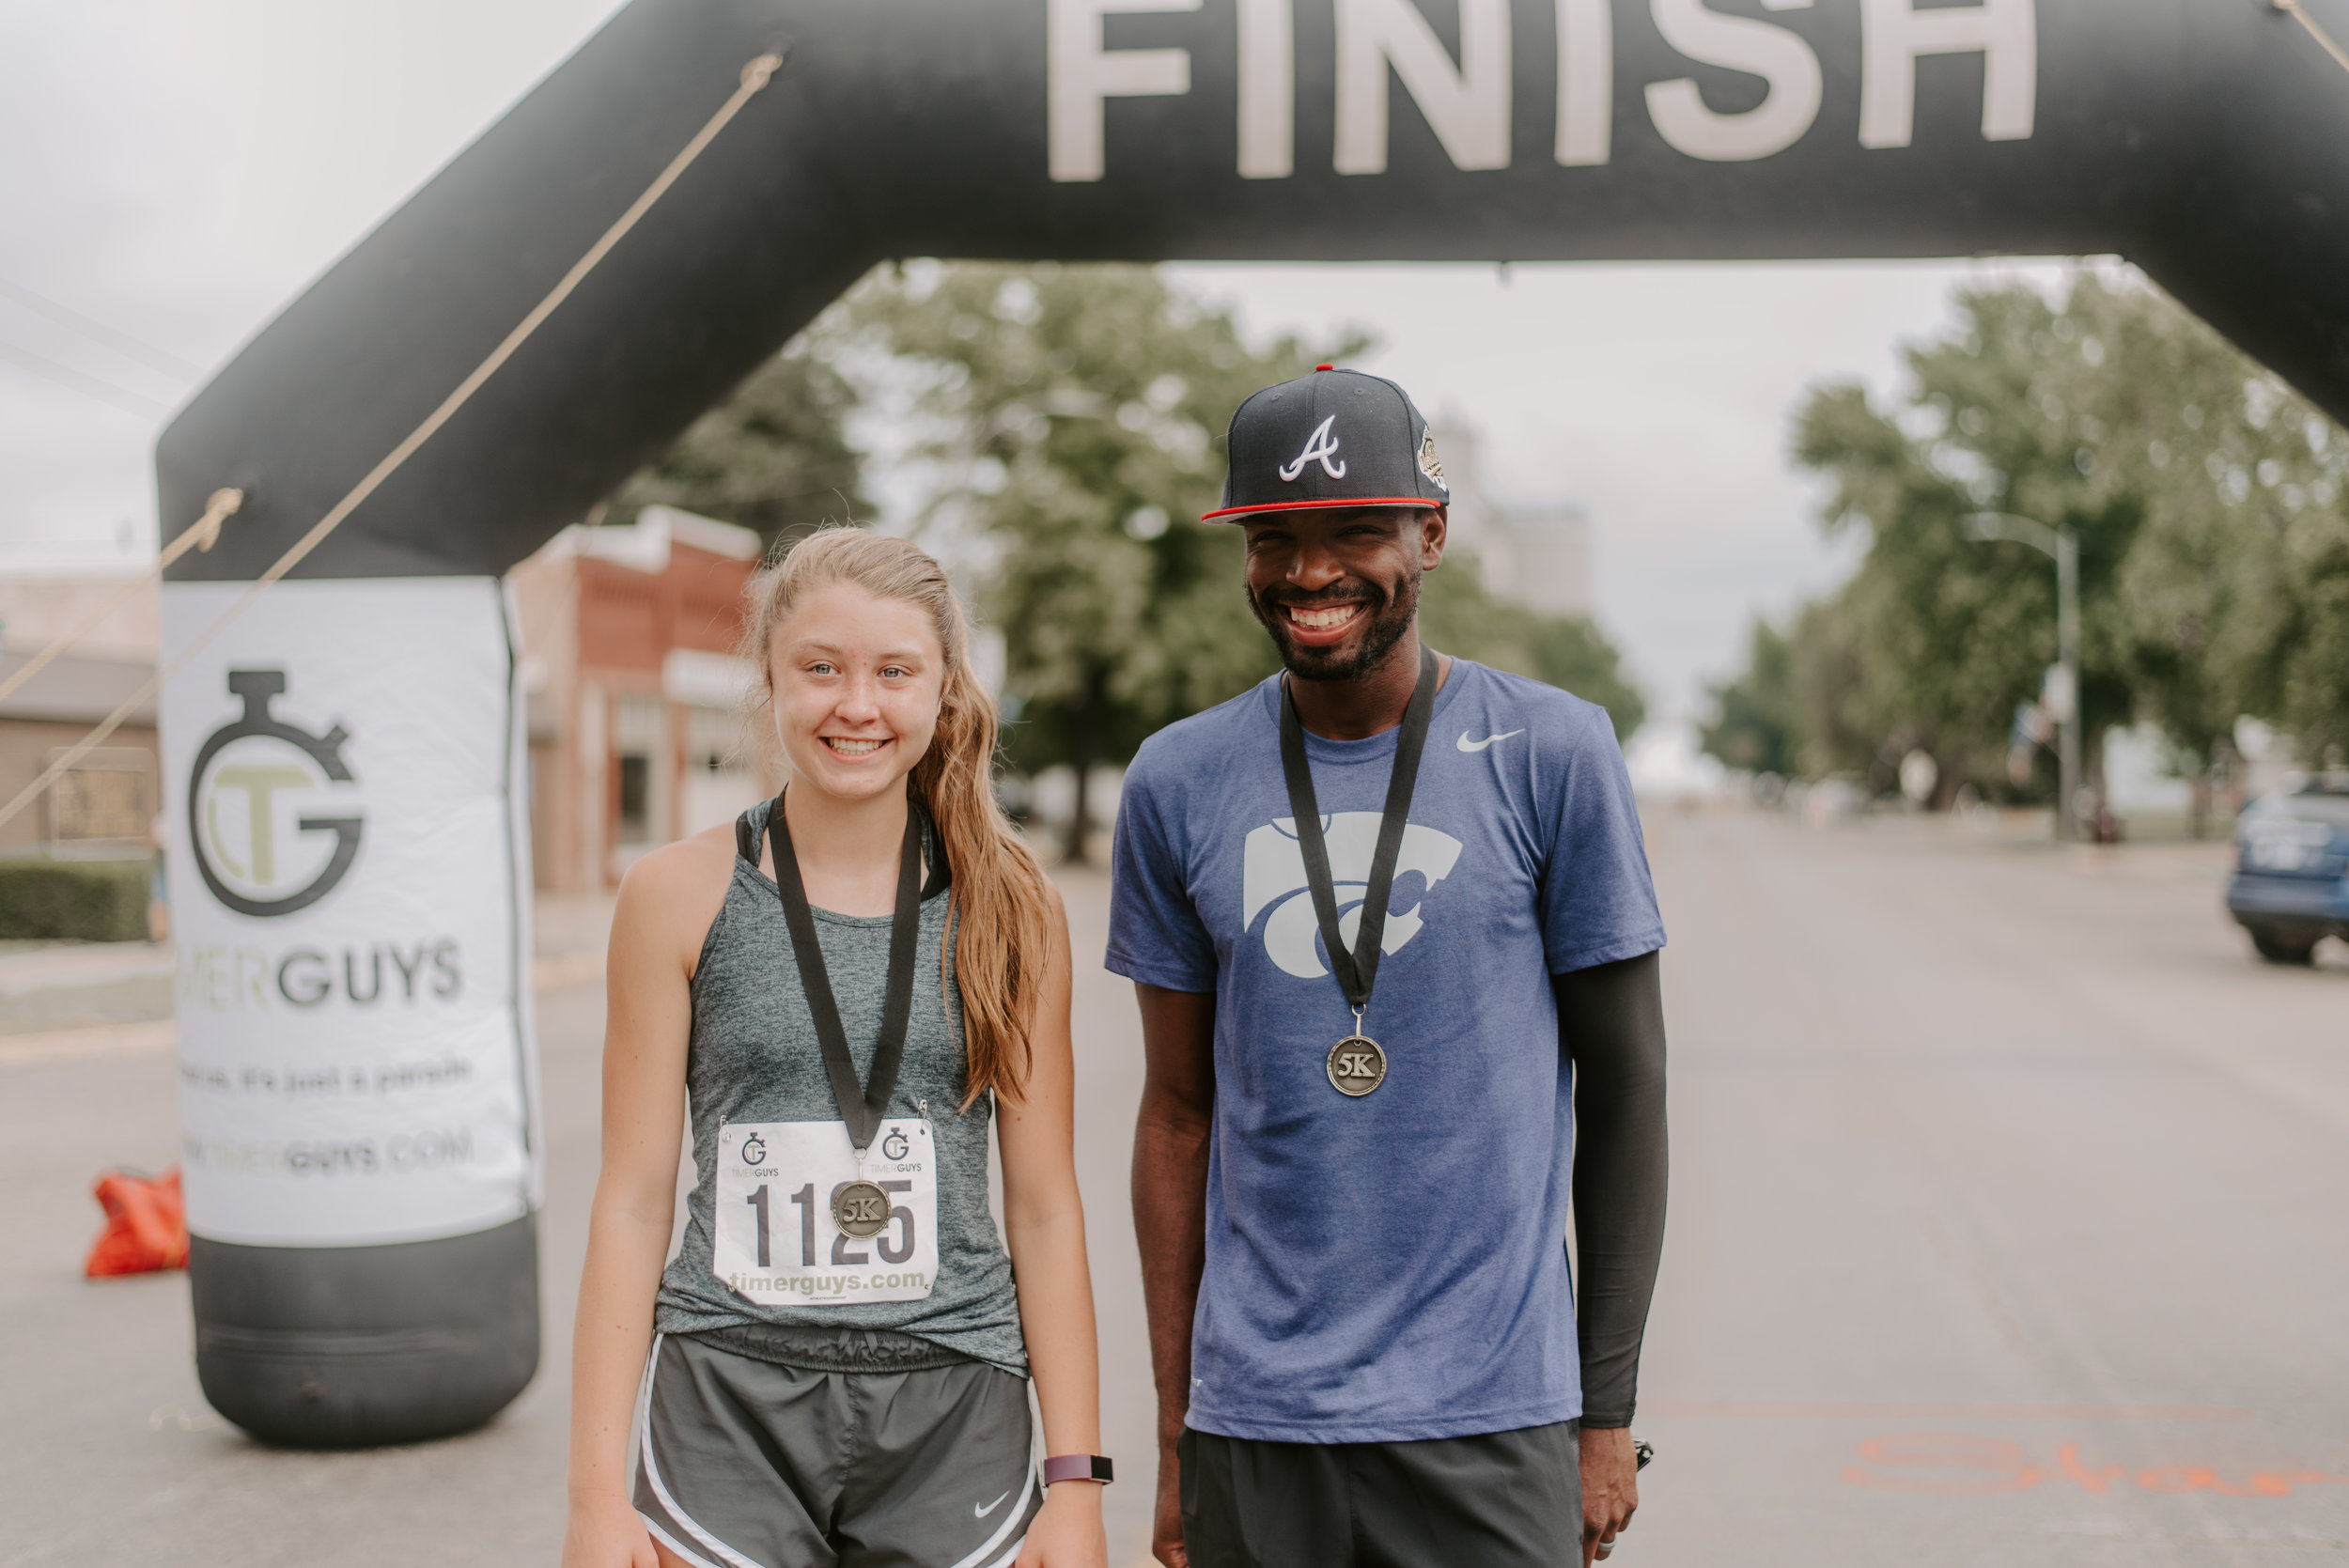 Ashtin Klepper, 16 of Ellinwood finished first in the women's race with a time of 22:08. Eddie Grier, 34 of Manhattan, Kansas won gold on the men's side, crossing the finish line at 17:51.